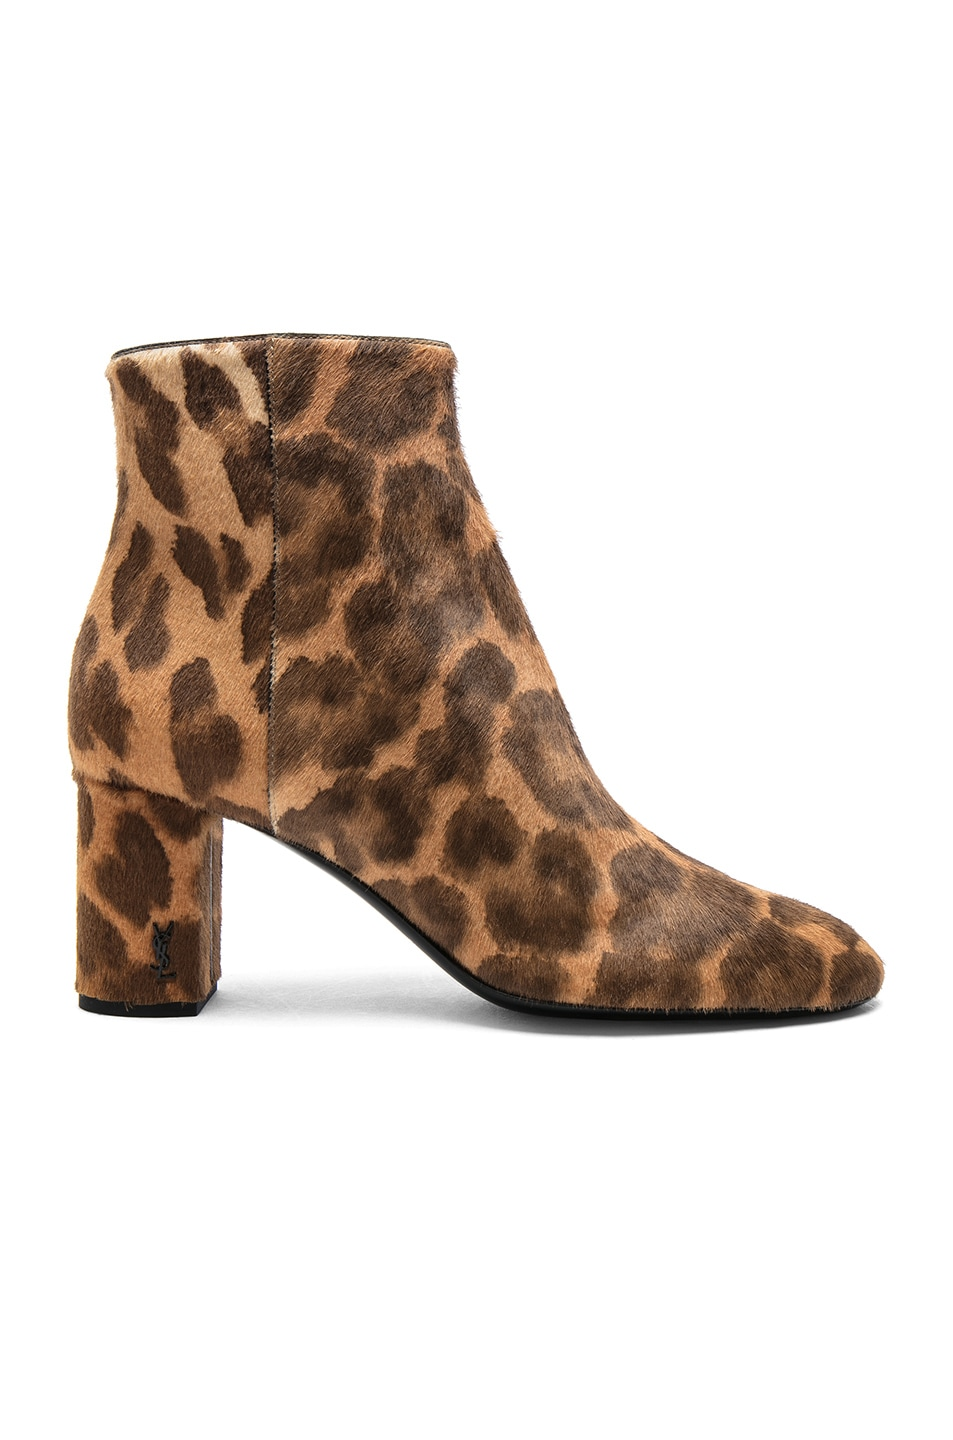 a48594f21a27 Image 1 of Saint Laurent Pony Hair Loulou Pin Boots in Natural Leopard